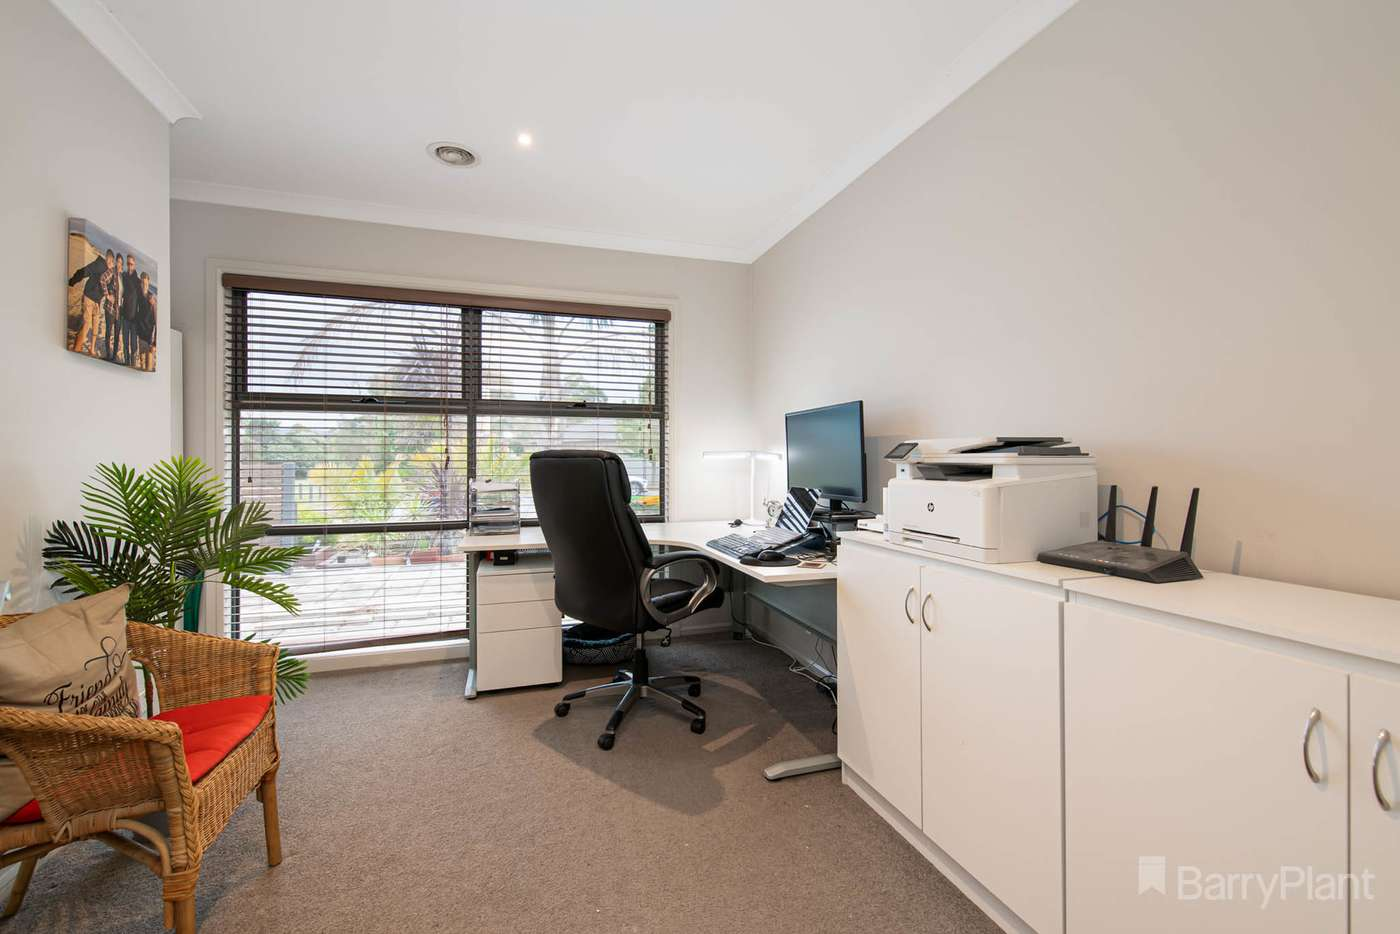 Seventh view of Homely house listing, 13 Veitch Court, Pakenham VIC 3810